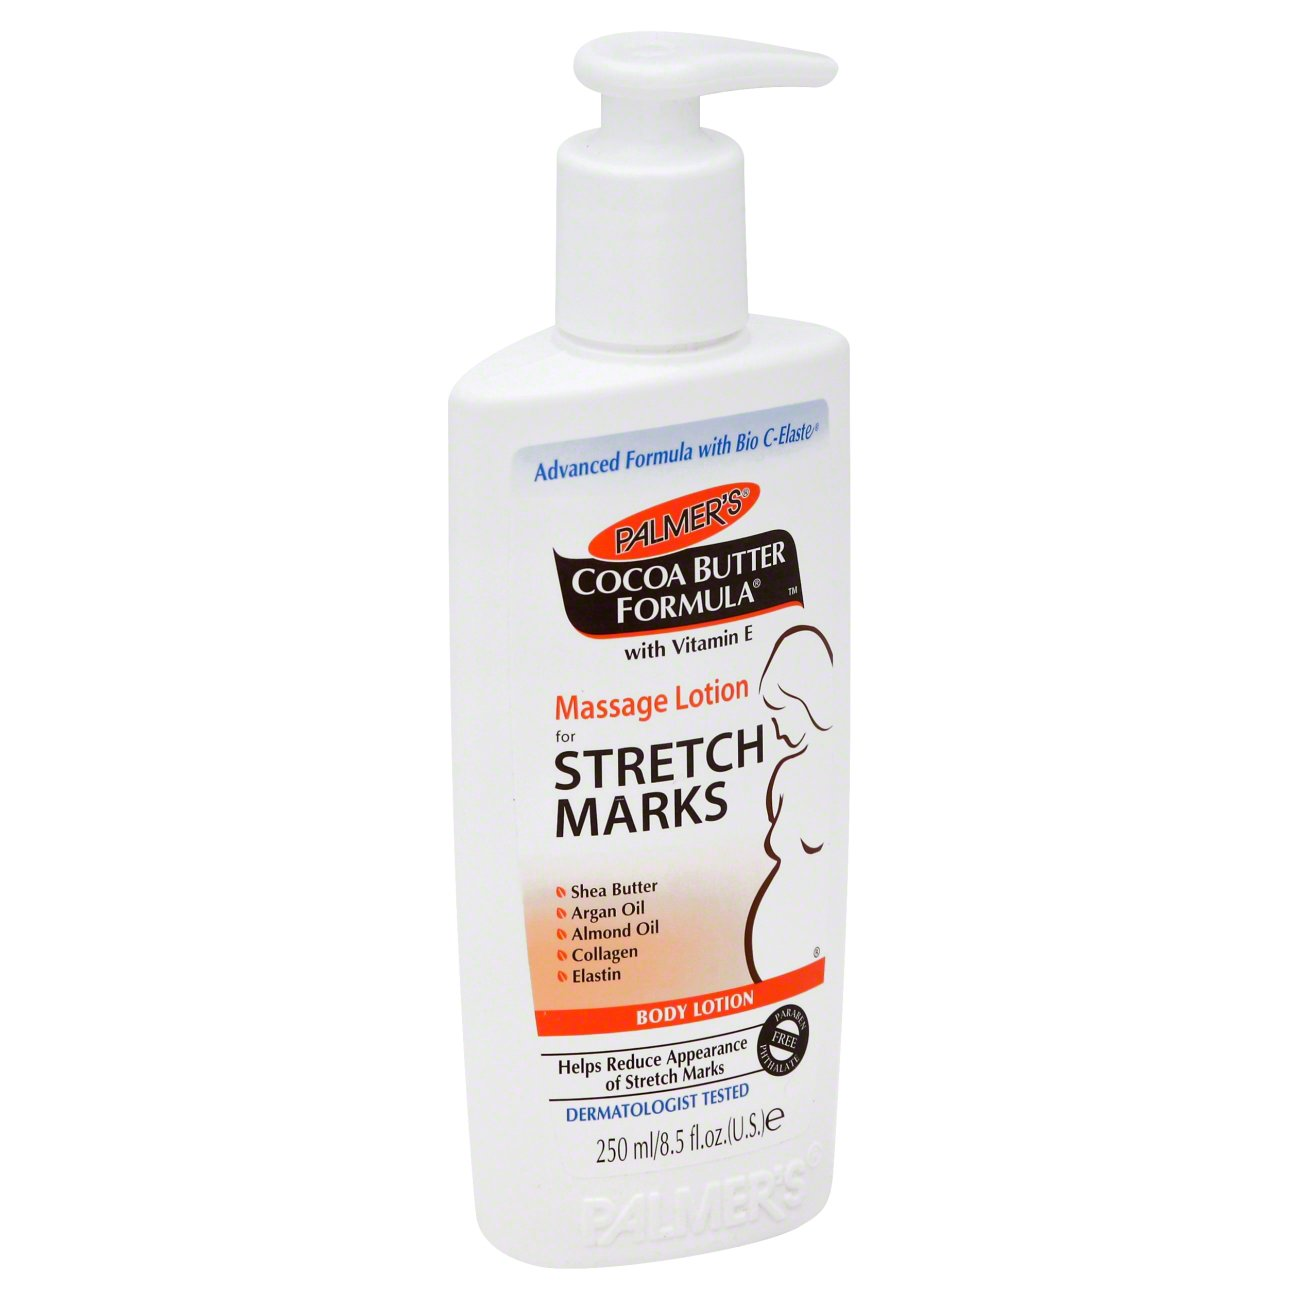 Palmer S Cocoa Butter Formula Massage Lotion For Stretch Marks Shop Moisturizers At H E B